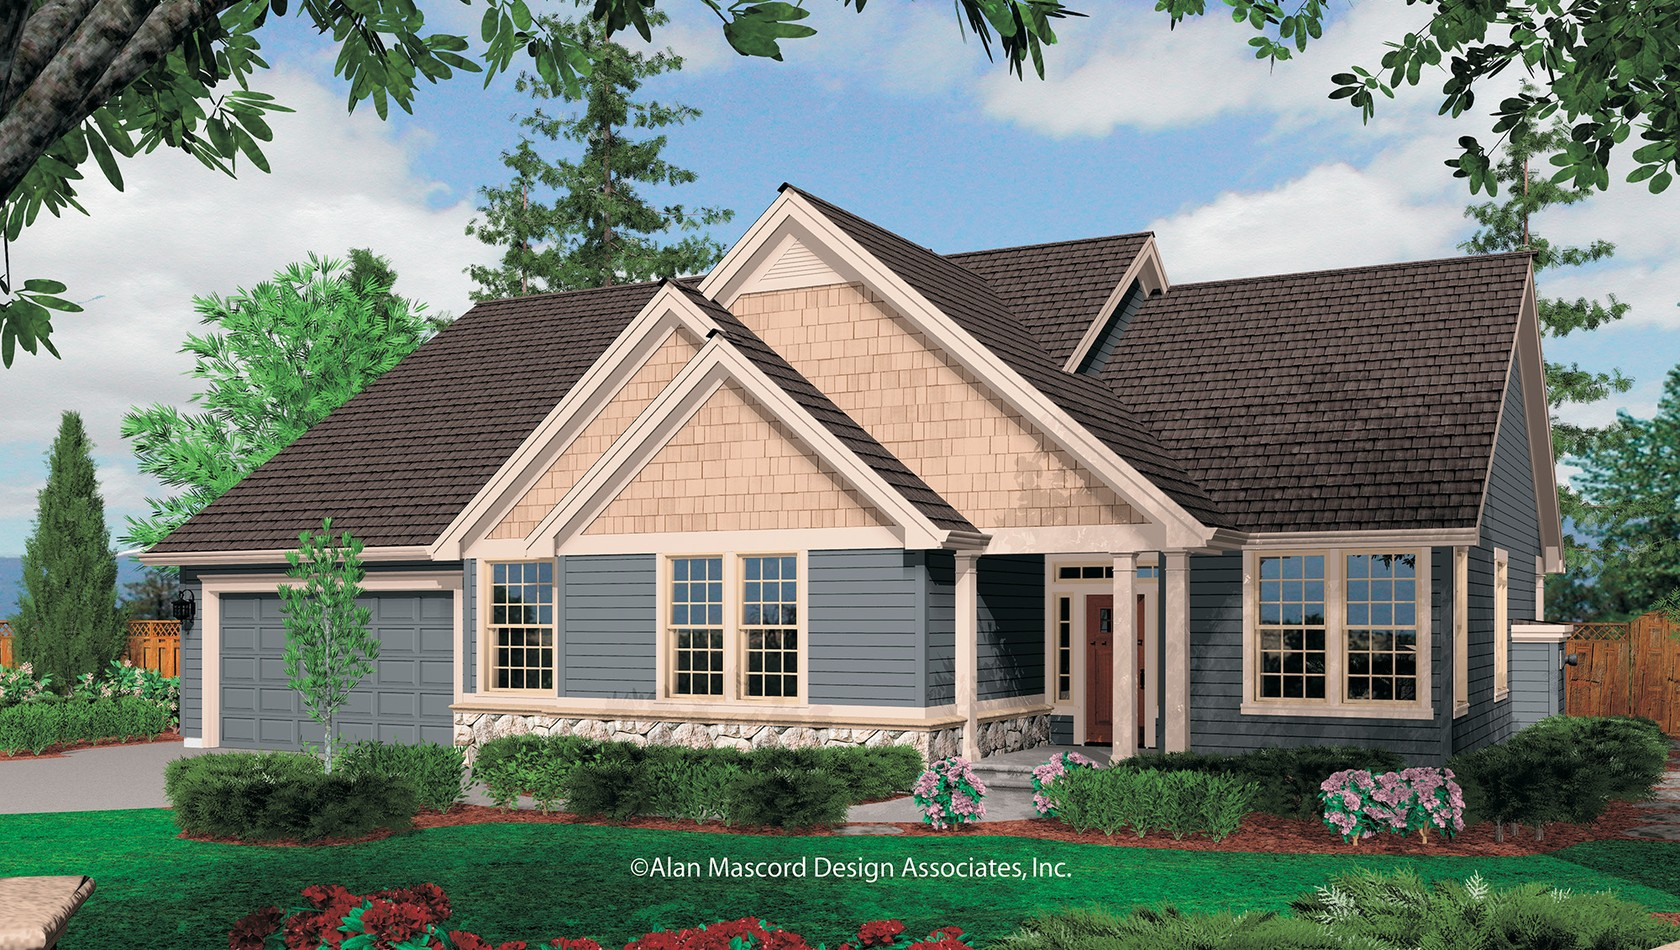 Main image for house plan 1231F: The Saratoga